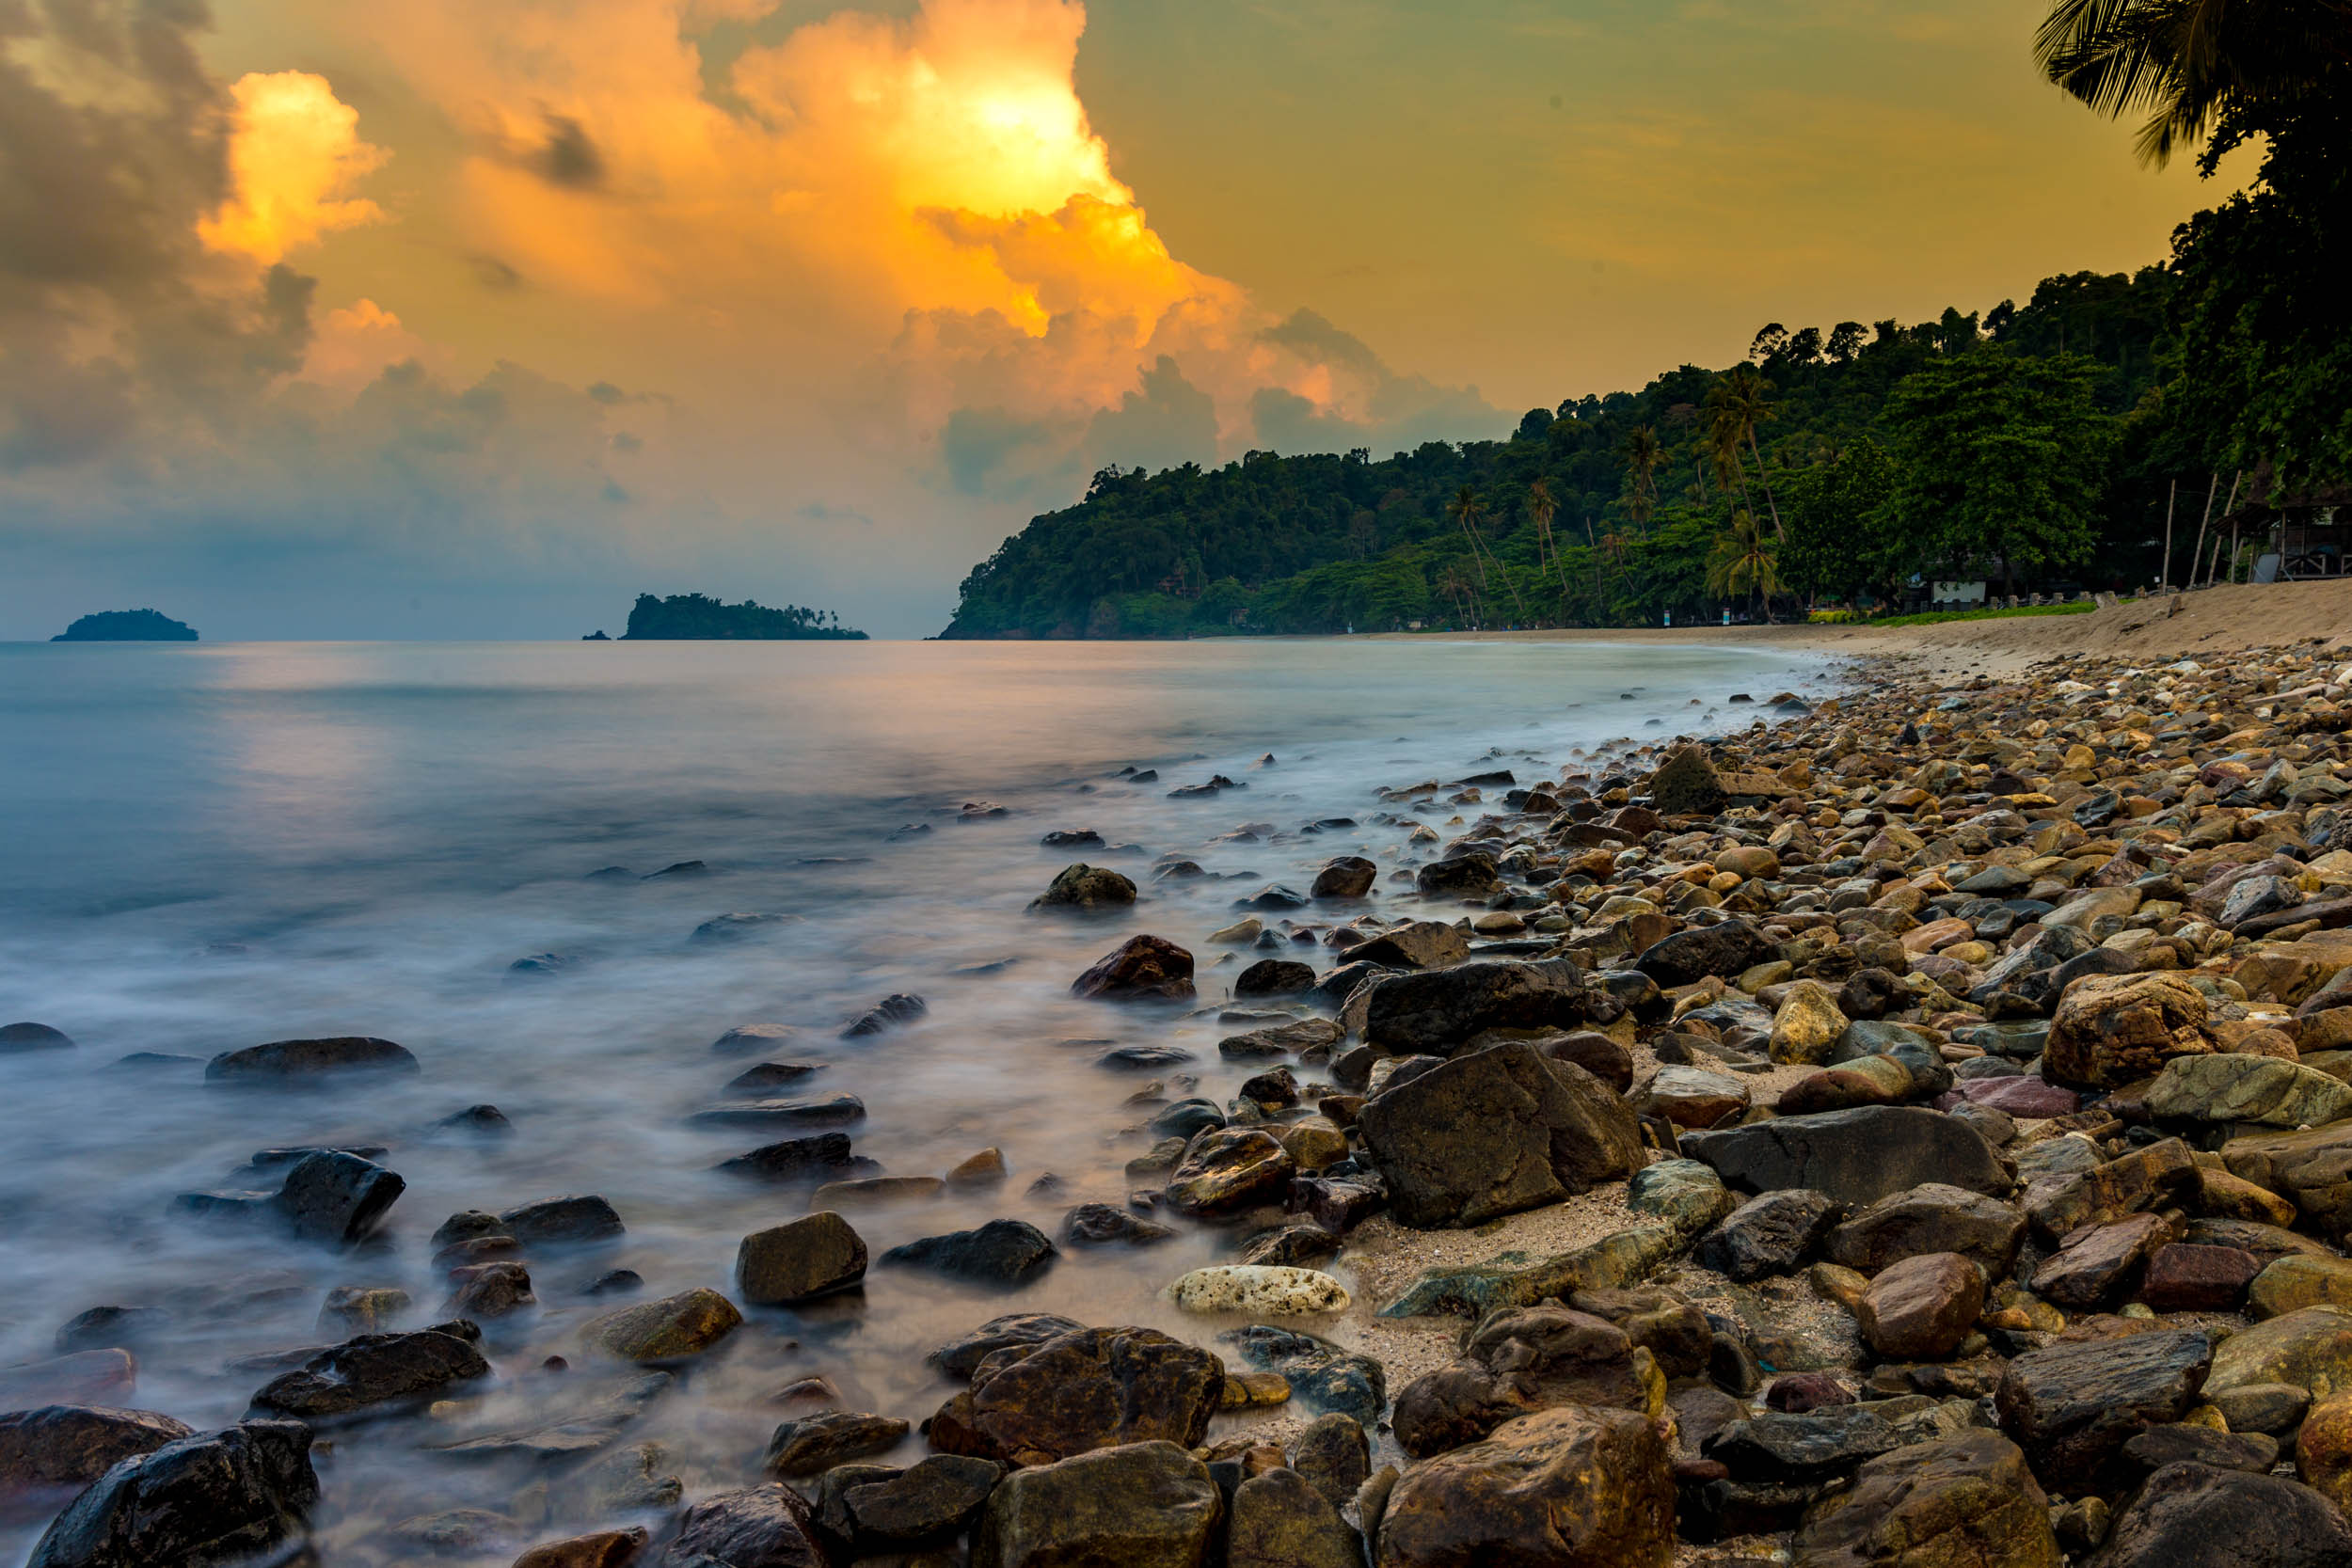 Sun Rise - Lonely Beach - Koh Chang, Thailand